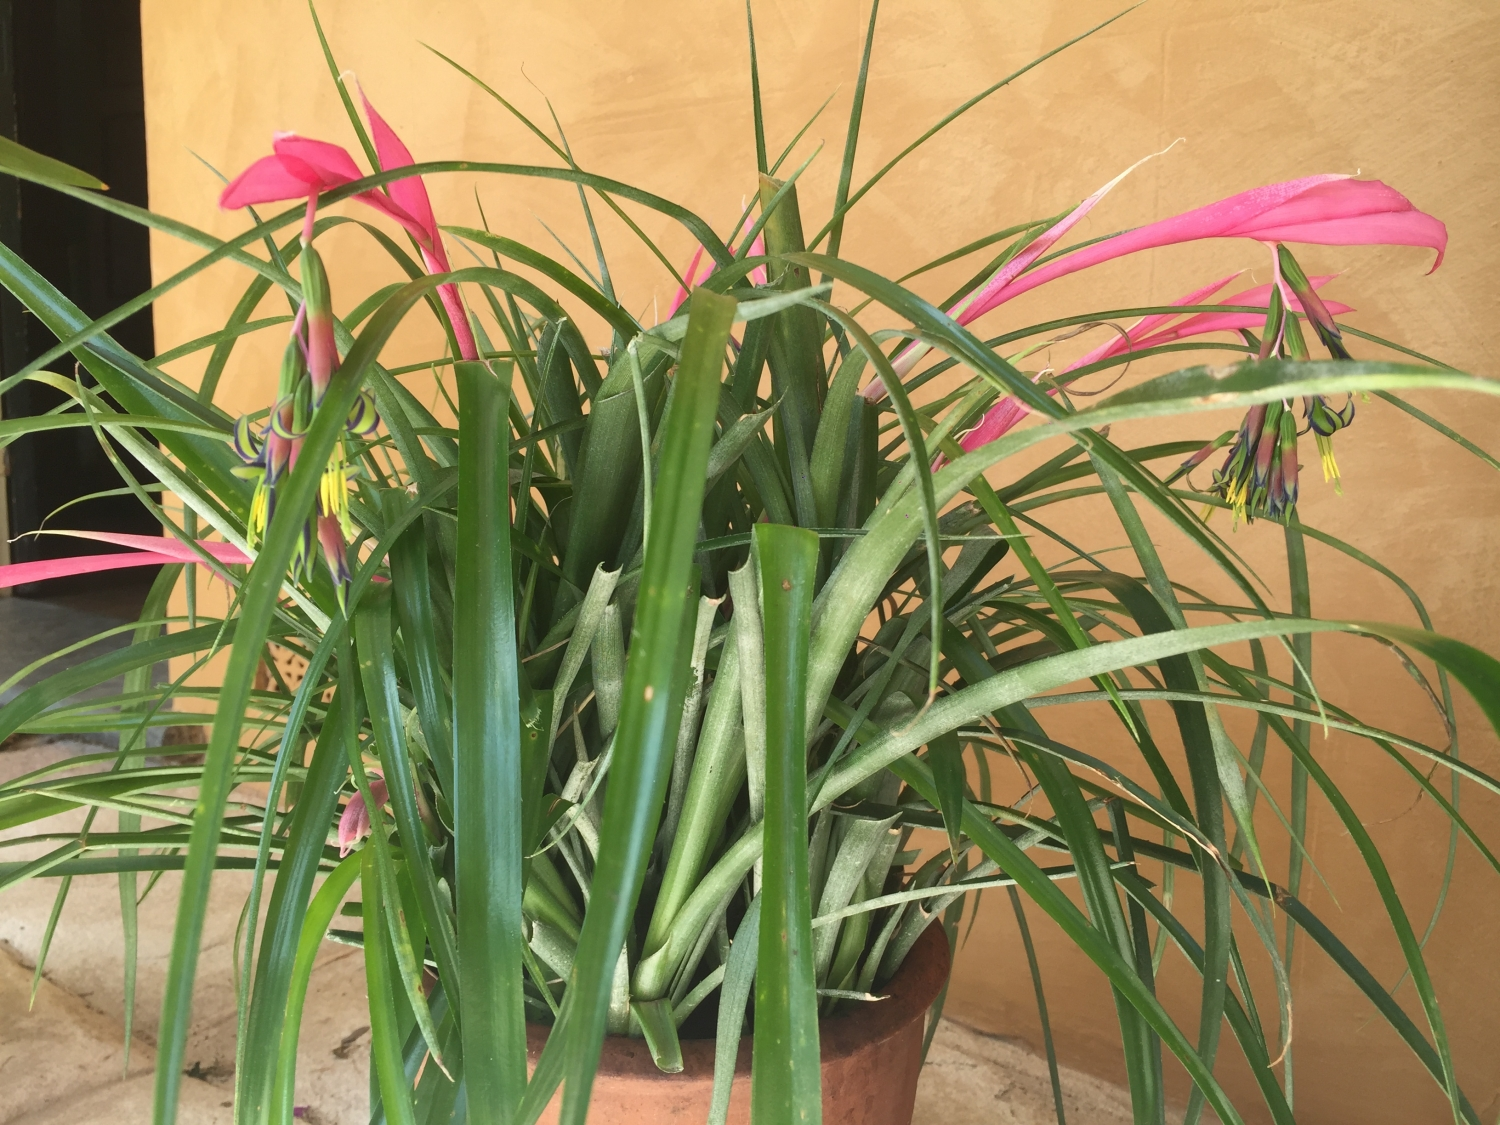 Pot of bilbergia nutans - queens tears on the verandah at Elizabeth Farm